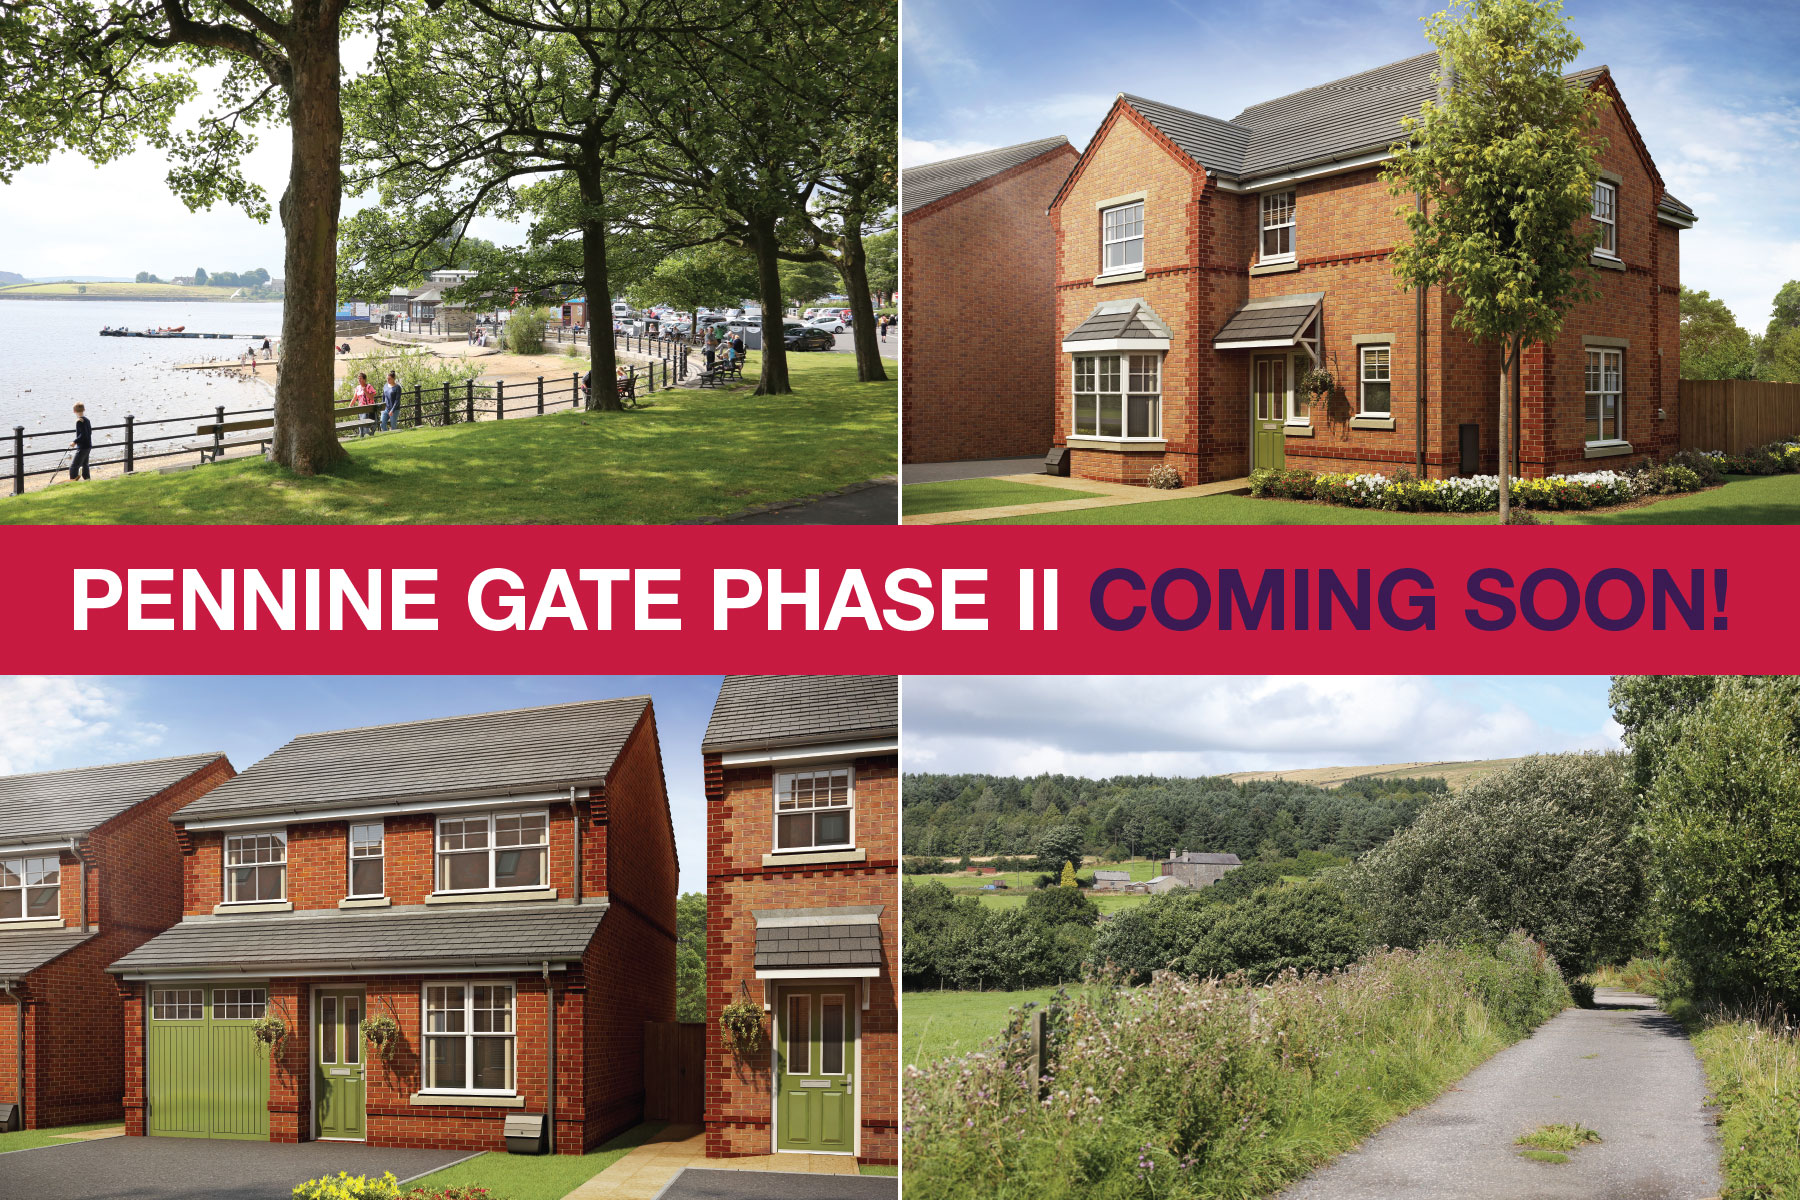 Pennine-Gate-PHASE-2-Coming-Soon-1800x1200px